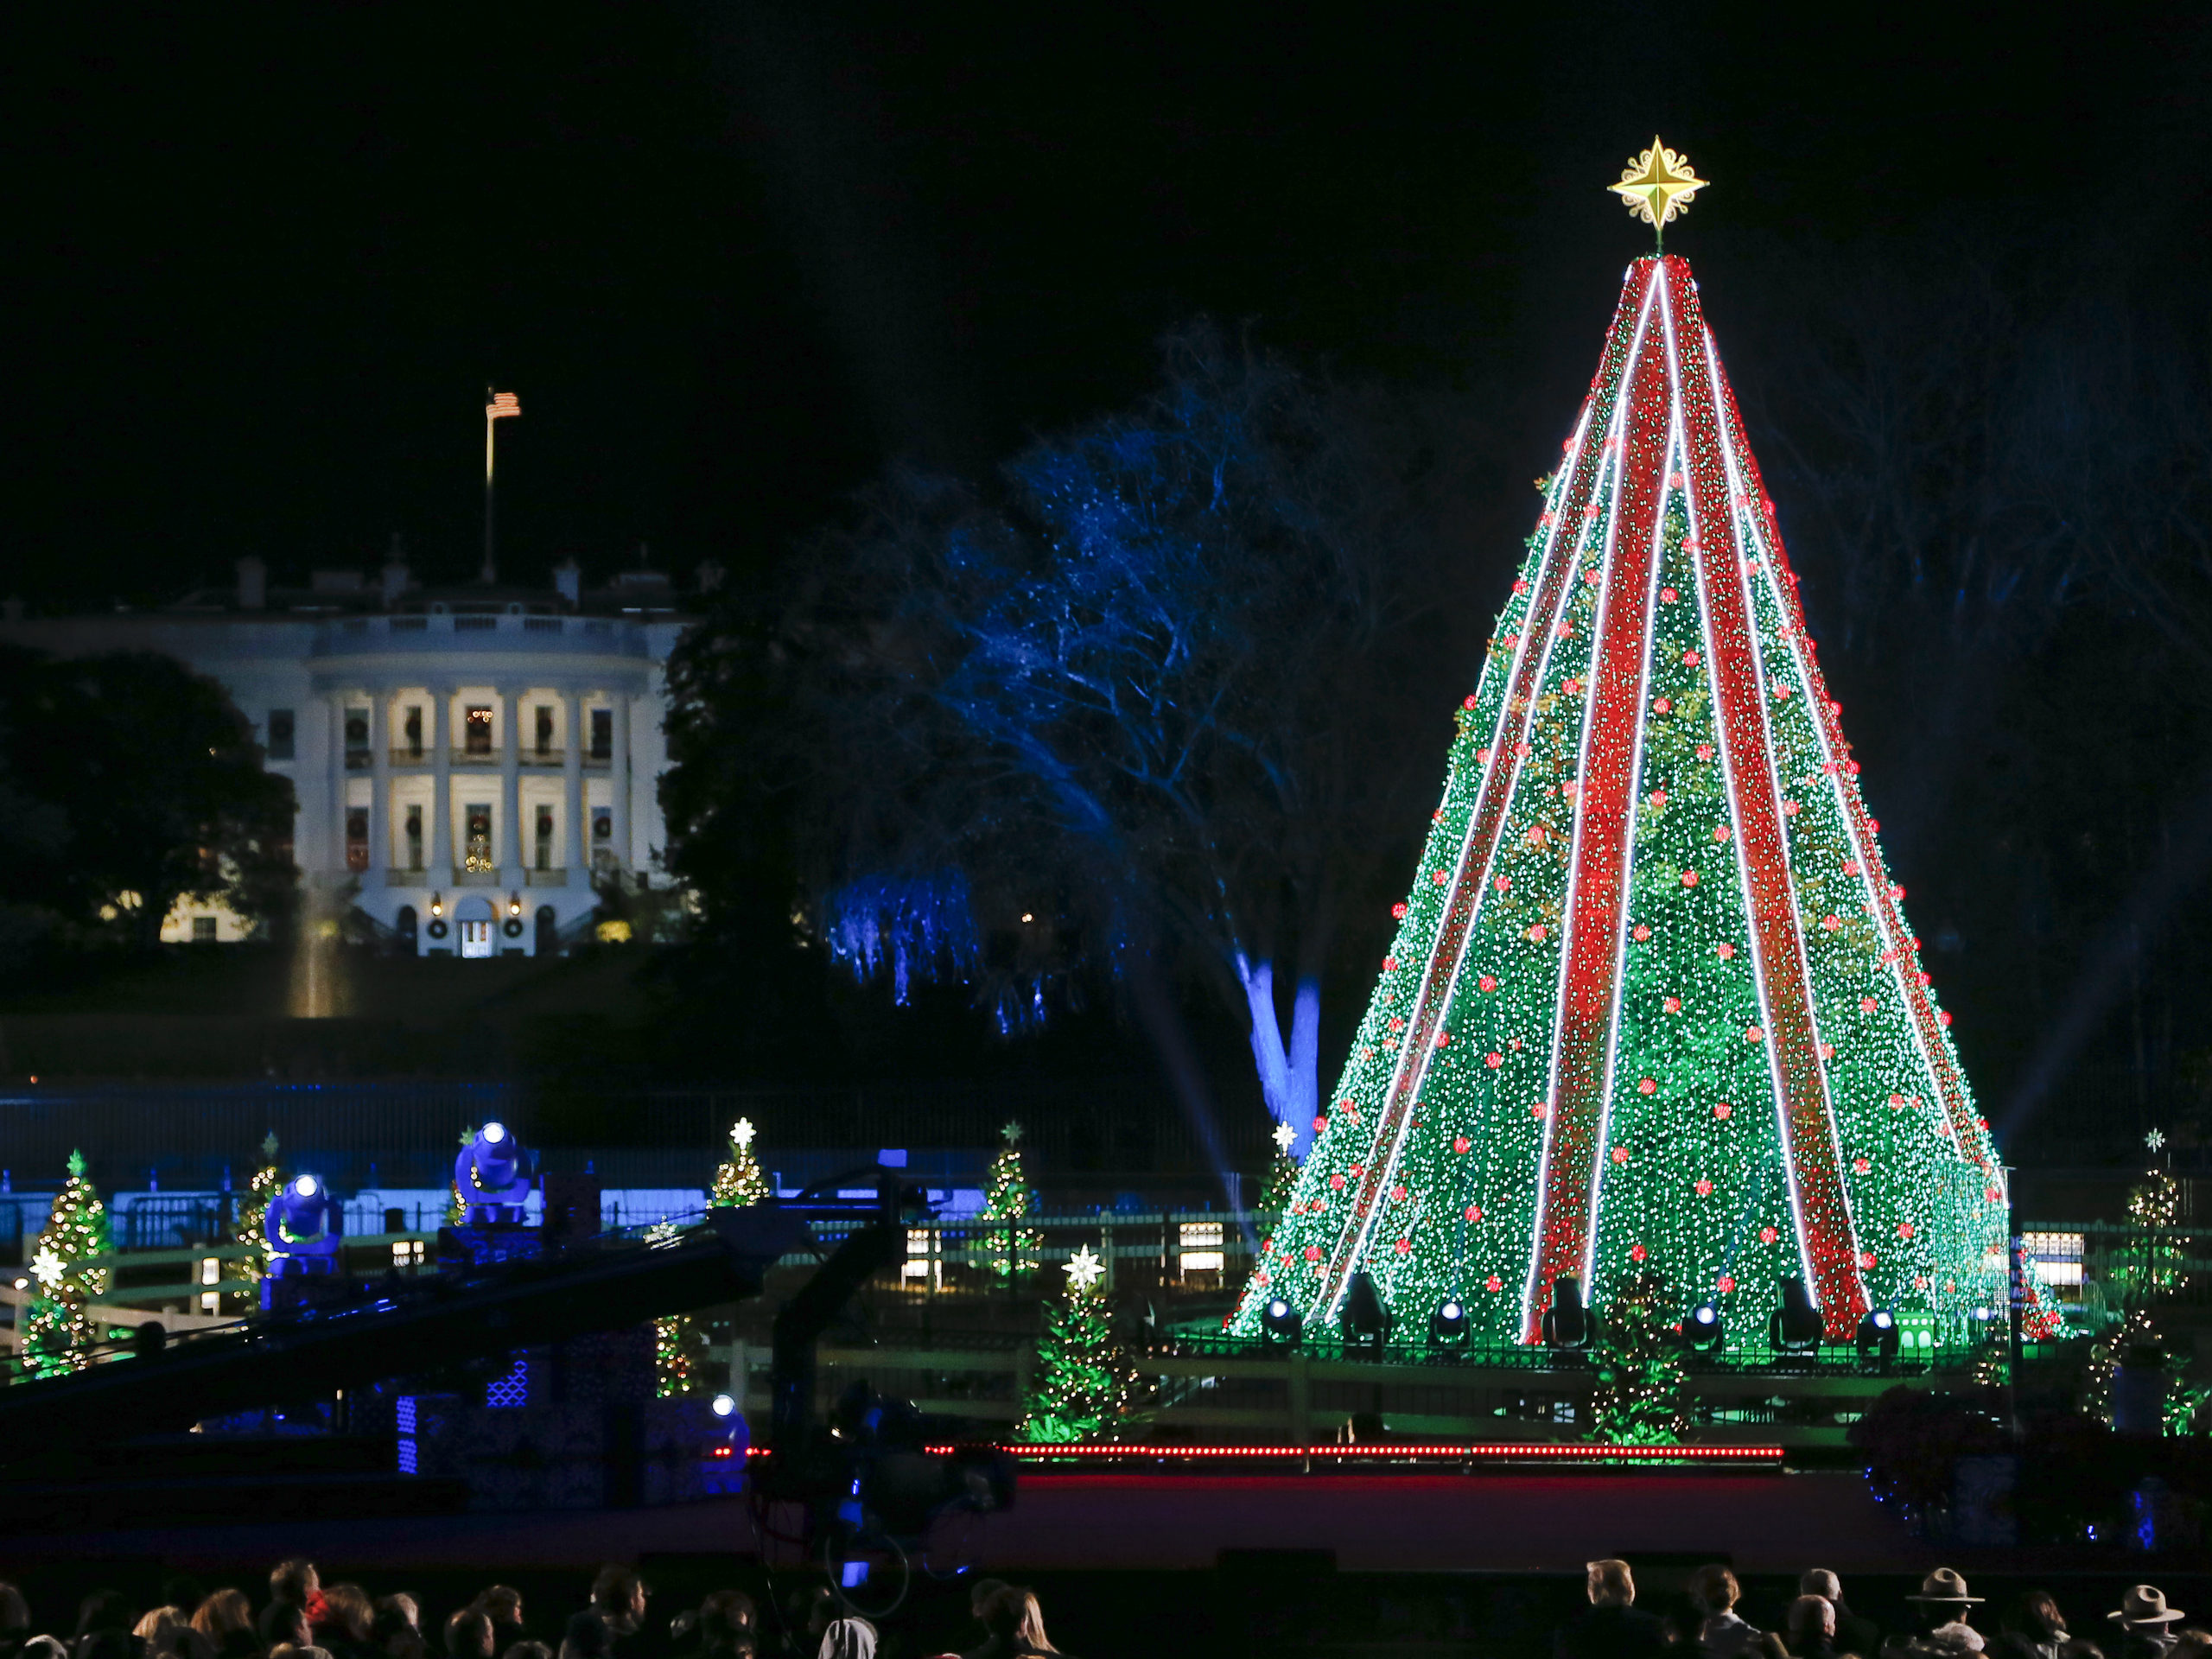 National Christmas Tree Lighting 2019 Lottery National Christmas Tree Lighting |